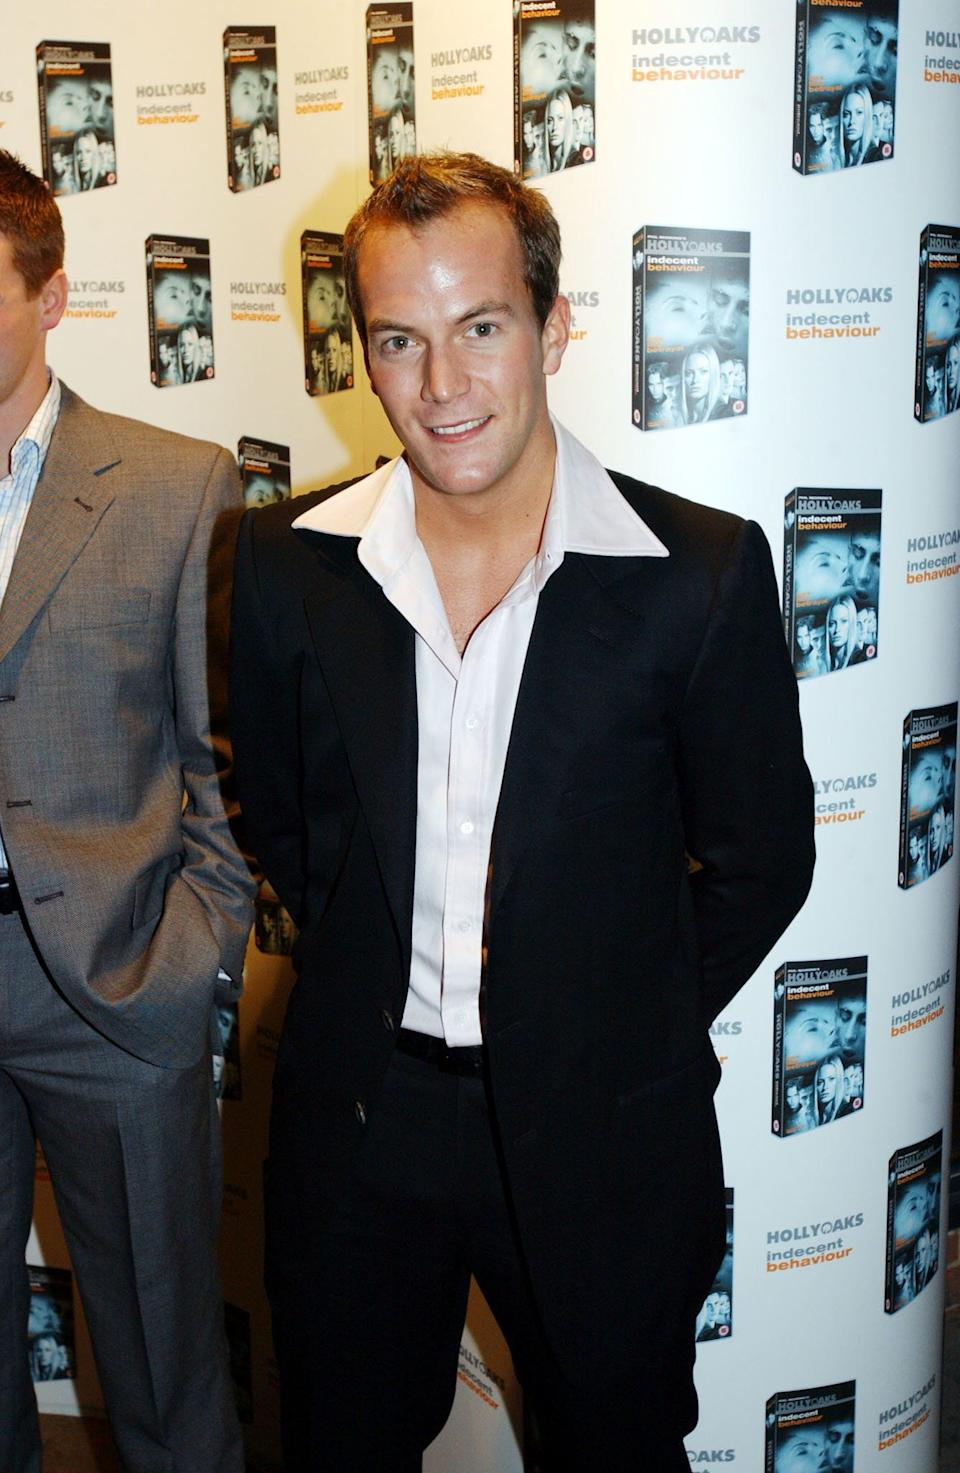 'Hollyoaks' actor Ben Hull has also appeared in one episode of 'Corrie' and four episodes of the now-defunct 'Brookside'.